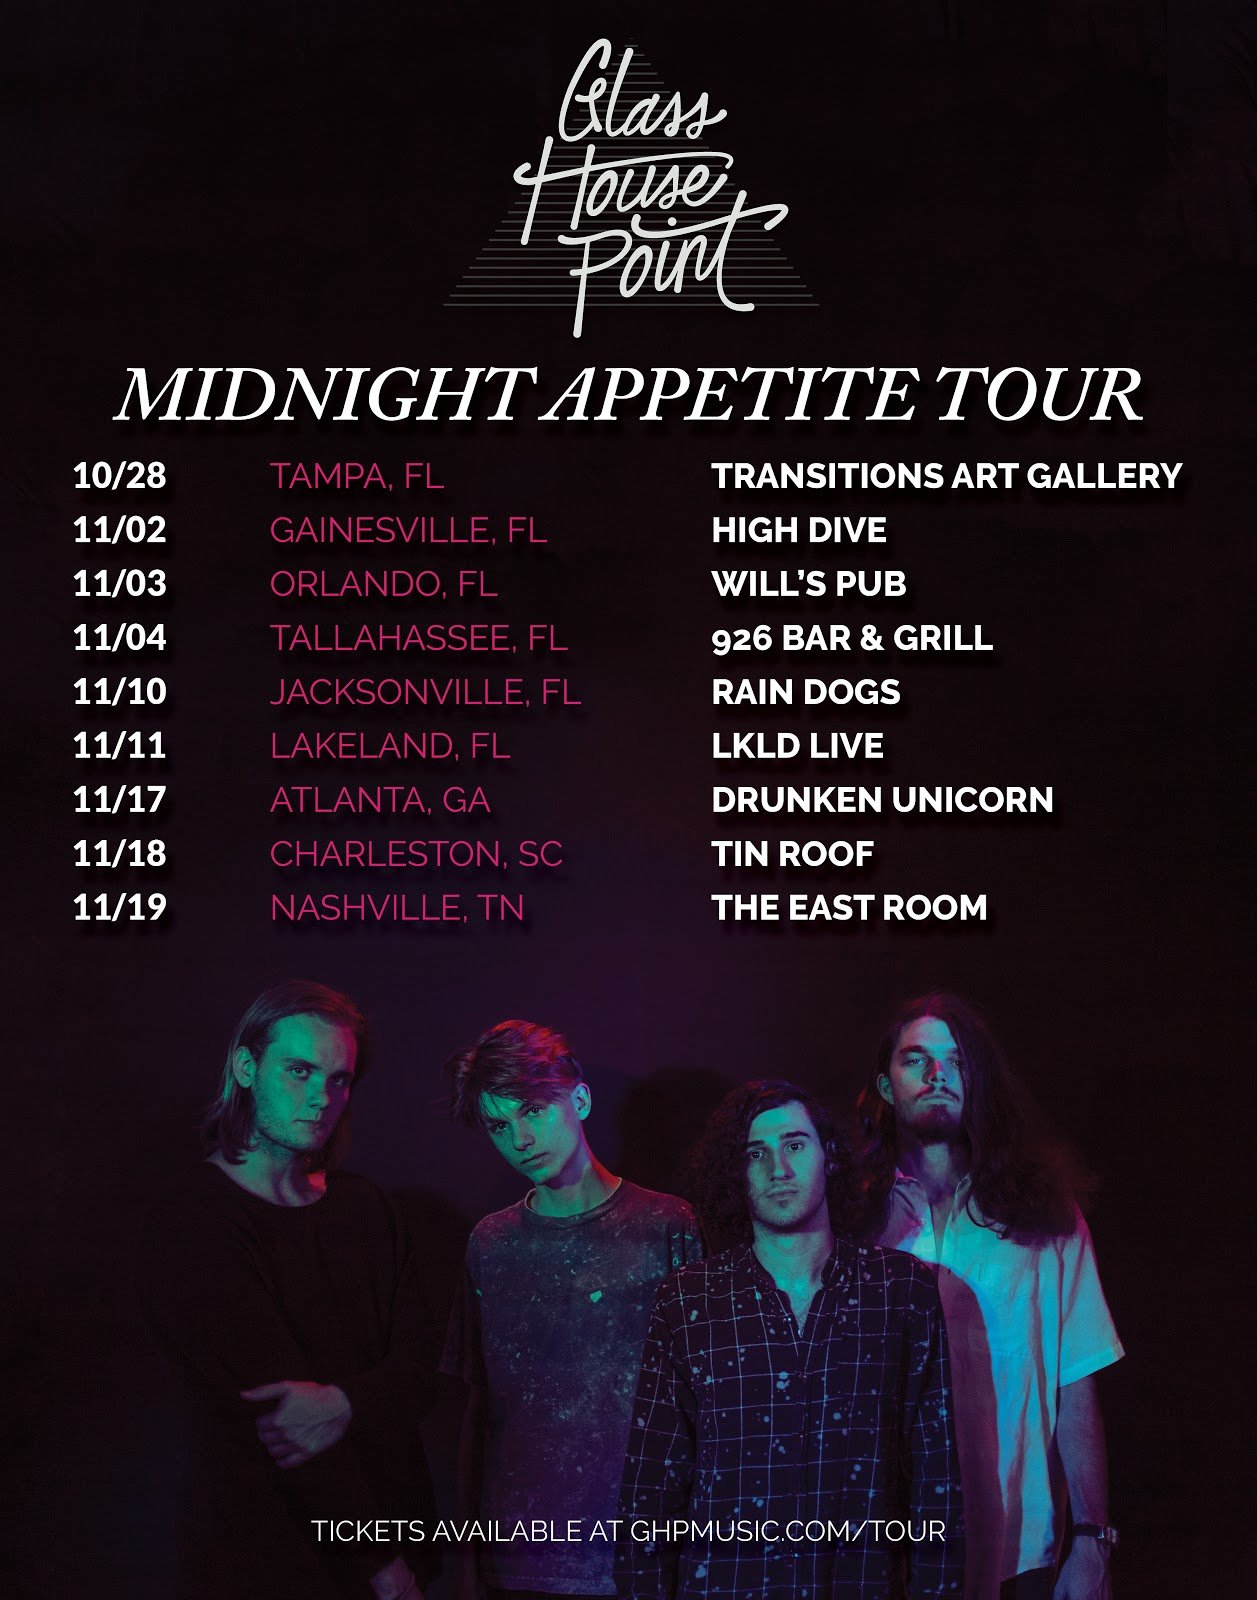 Glass House Point Announce A New Hunger In Midnight